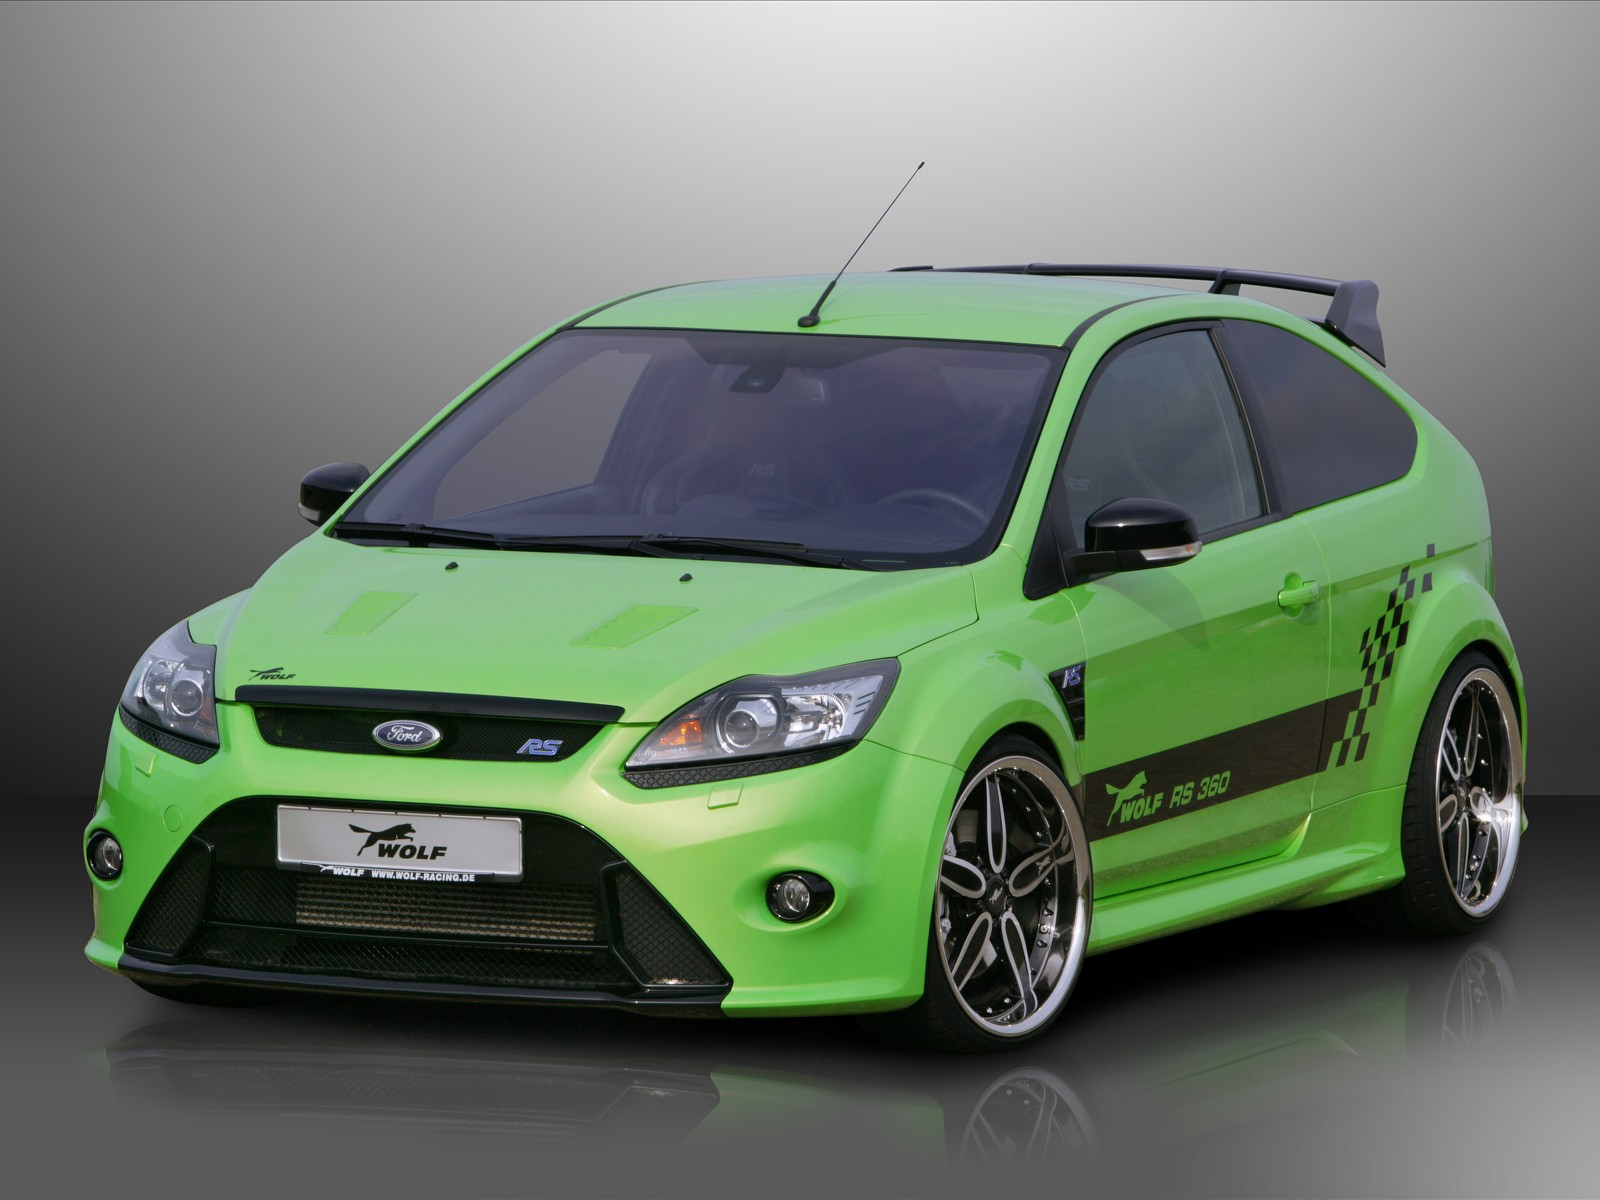 Ford Focus Wallpaper 6089 Hd Wallpapers in Cars   Imagescicom 1600x1200